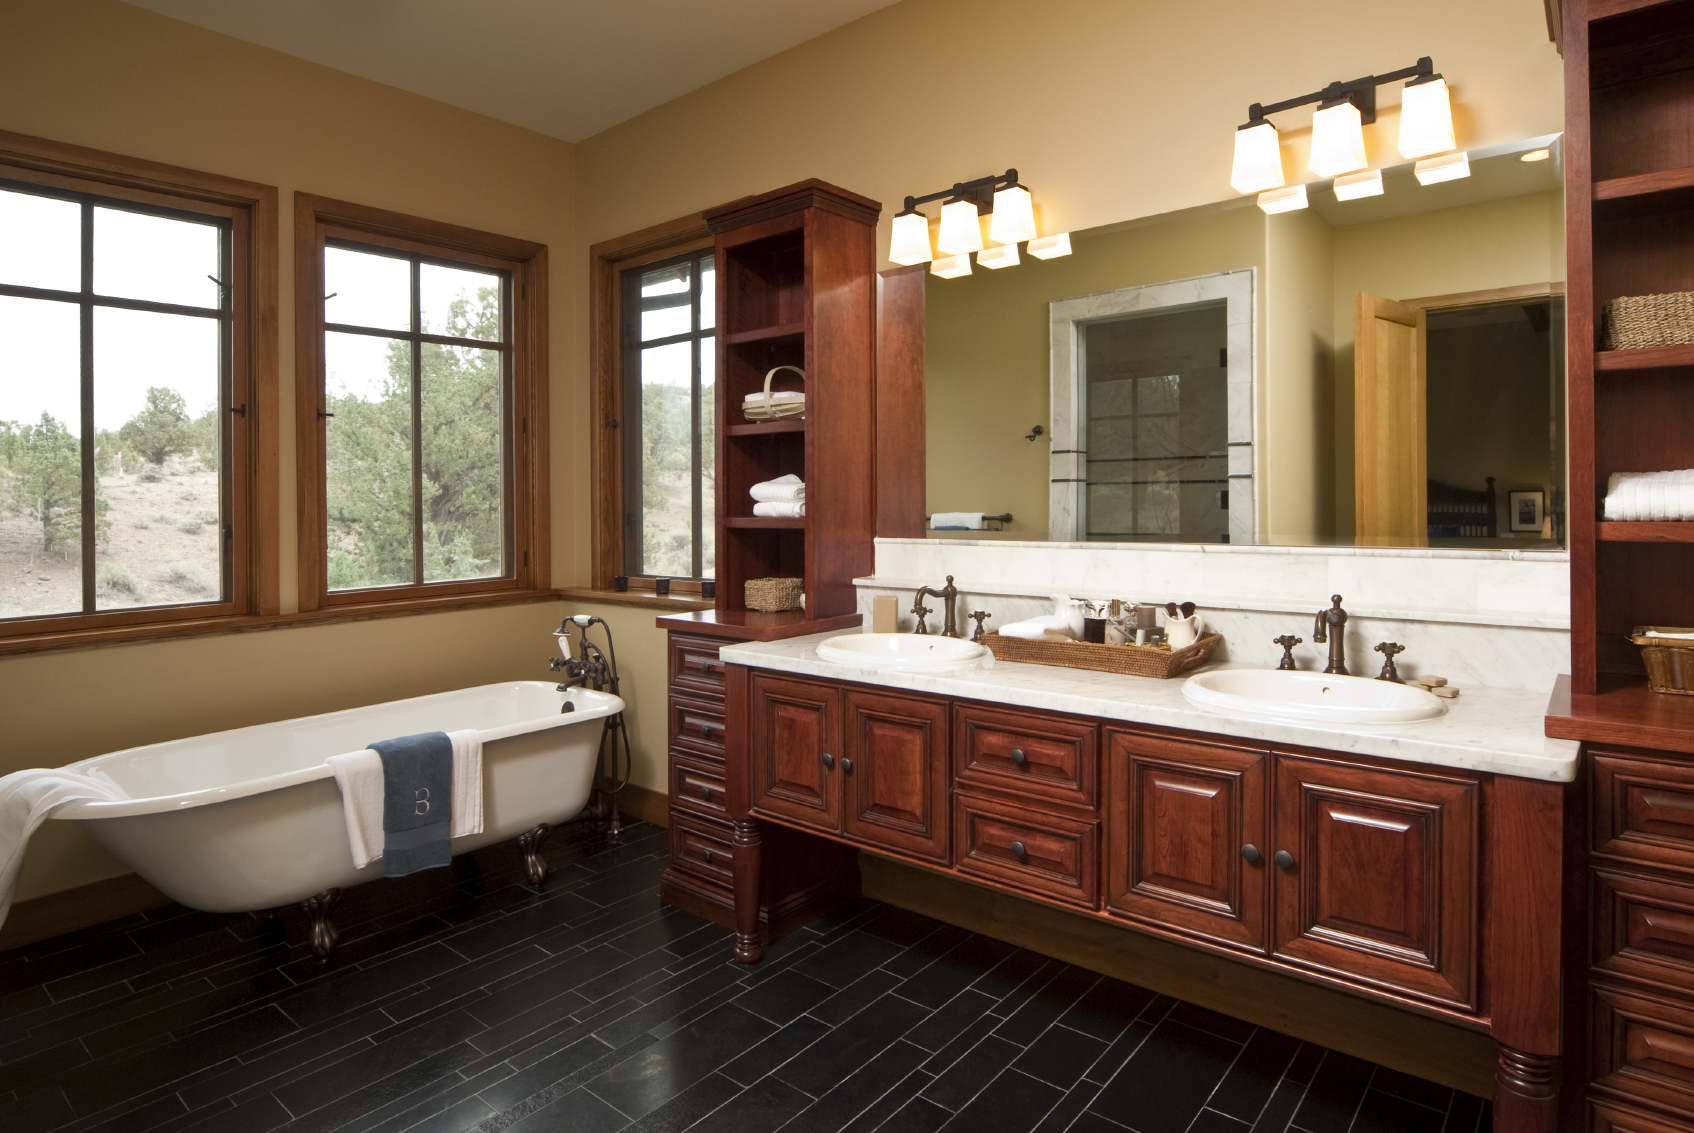 Custom Bathroom Vanities San Antonio Tx bathroom and kitchen | remodel san antonio